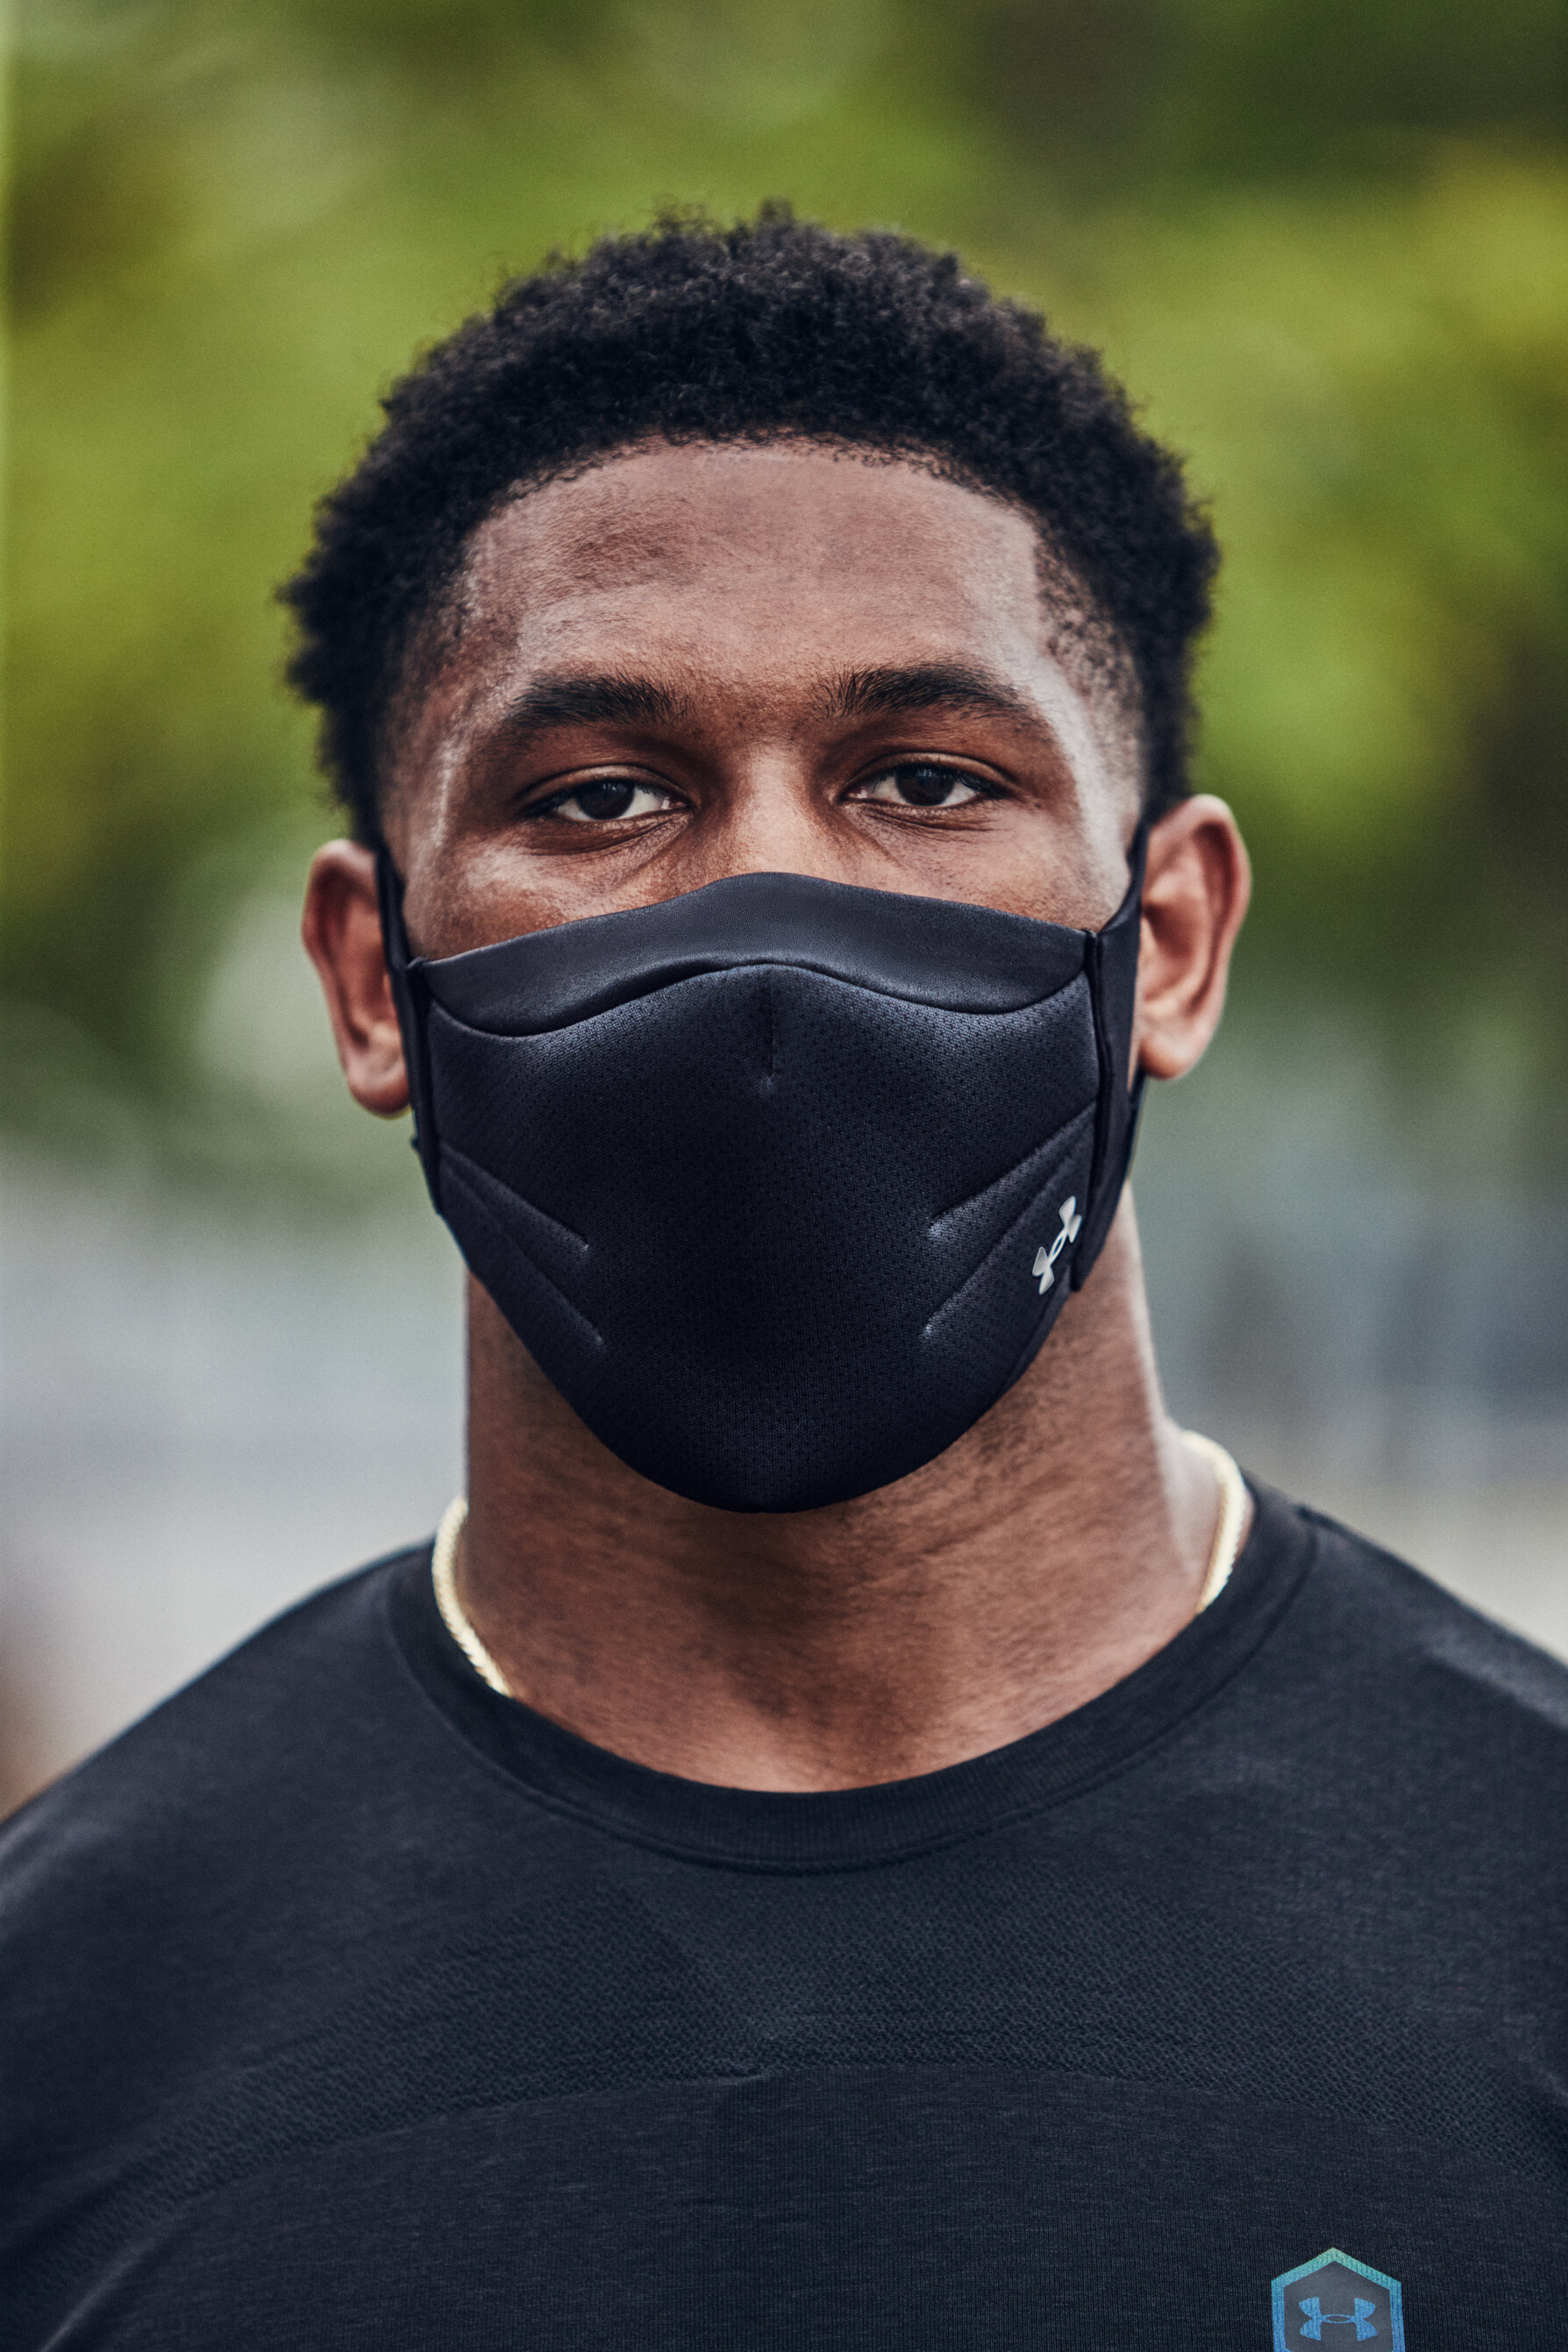 Under Armour Designs A High Performance Face Mask For Training And Exercise